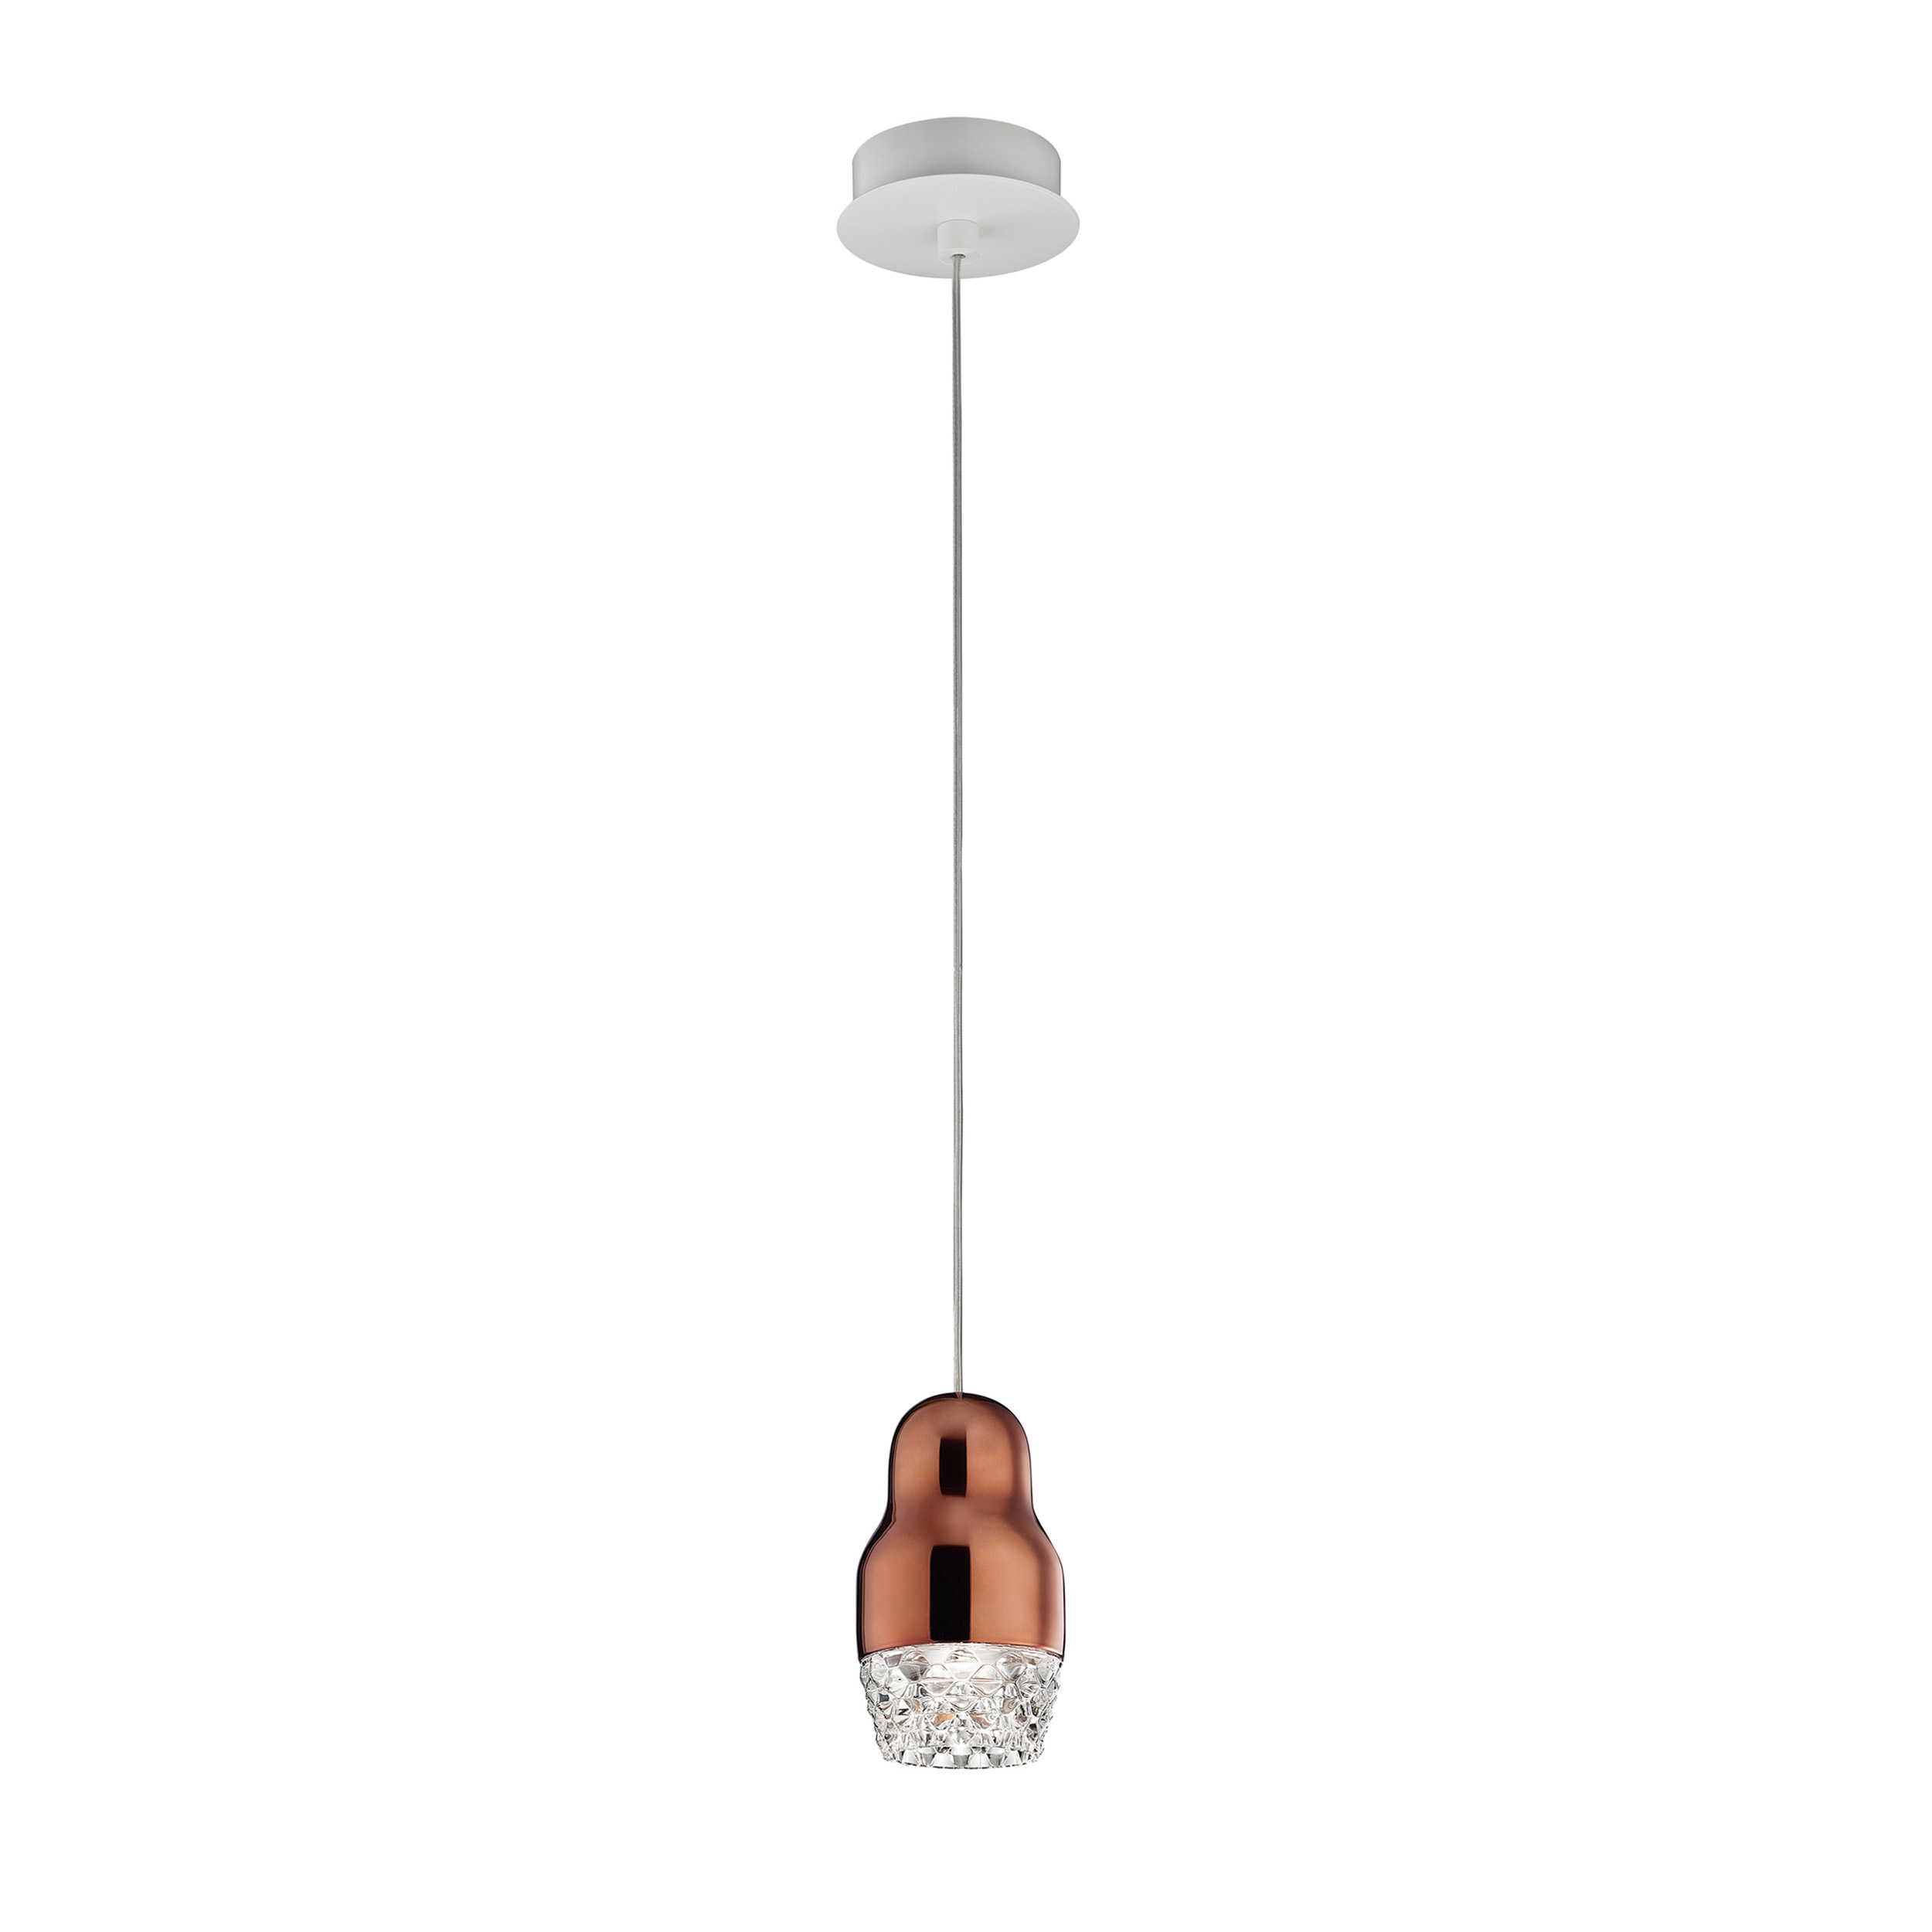 Axolight Fedora 1 Pendant Light Bronze B